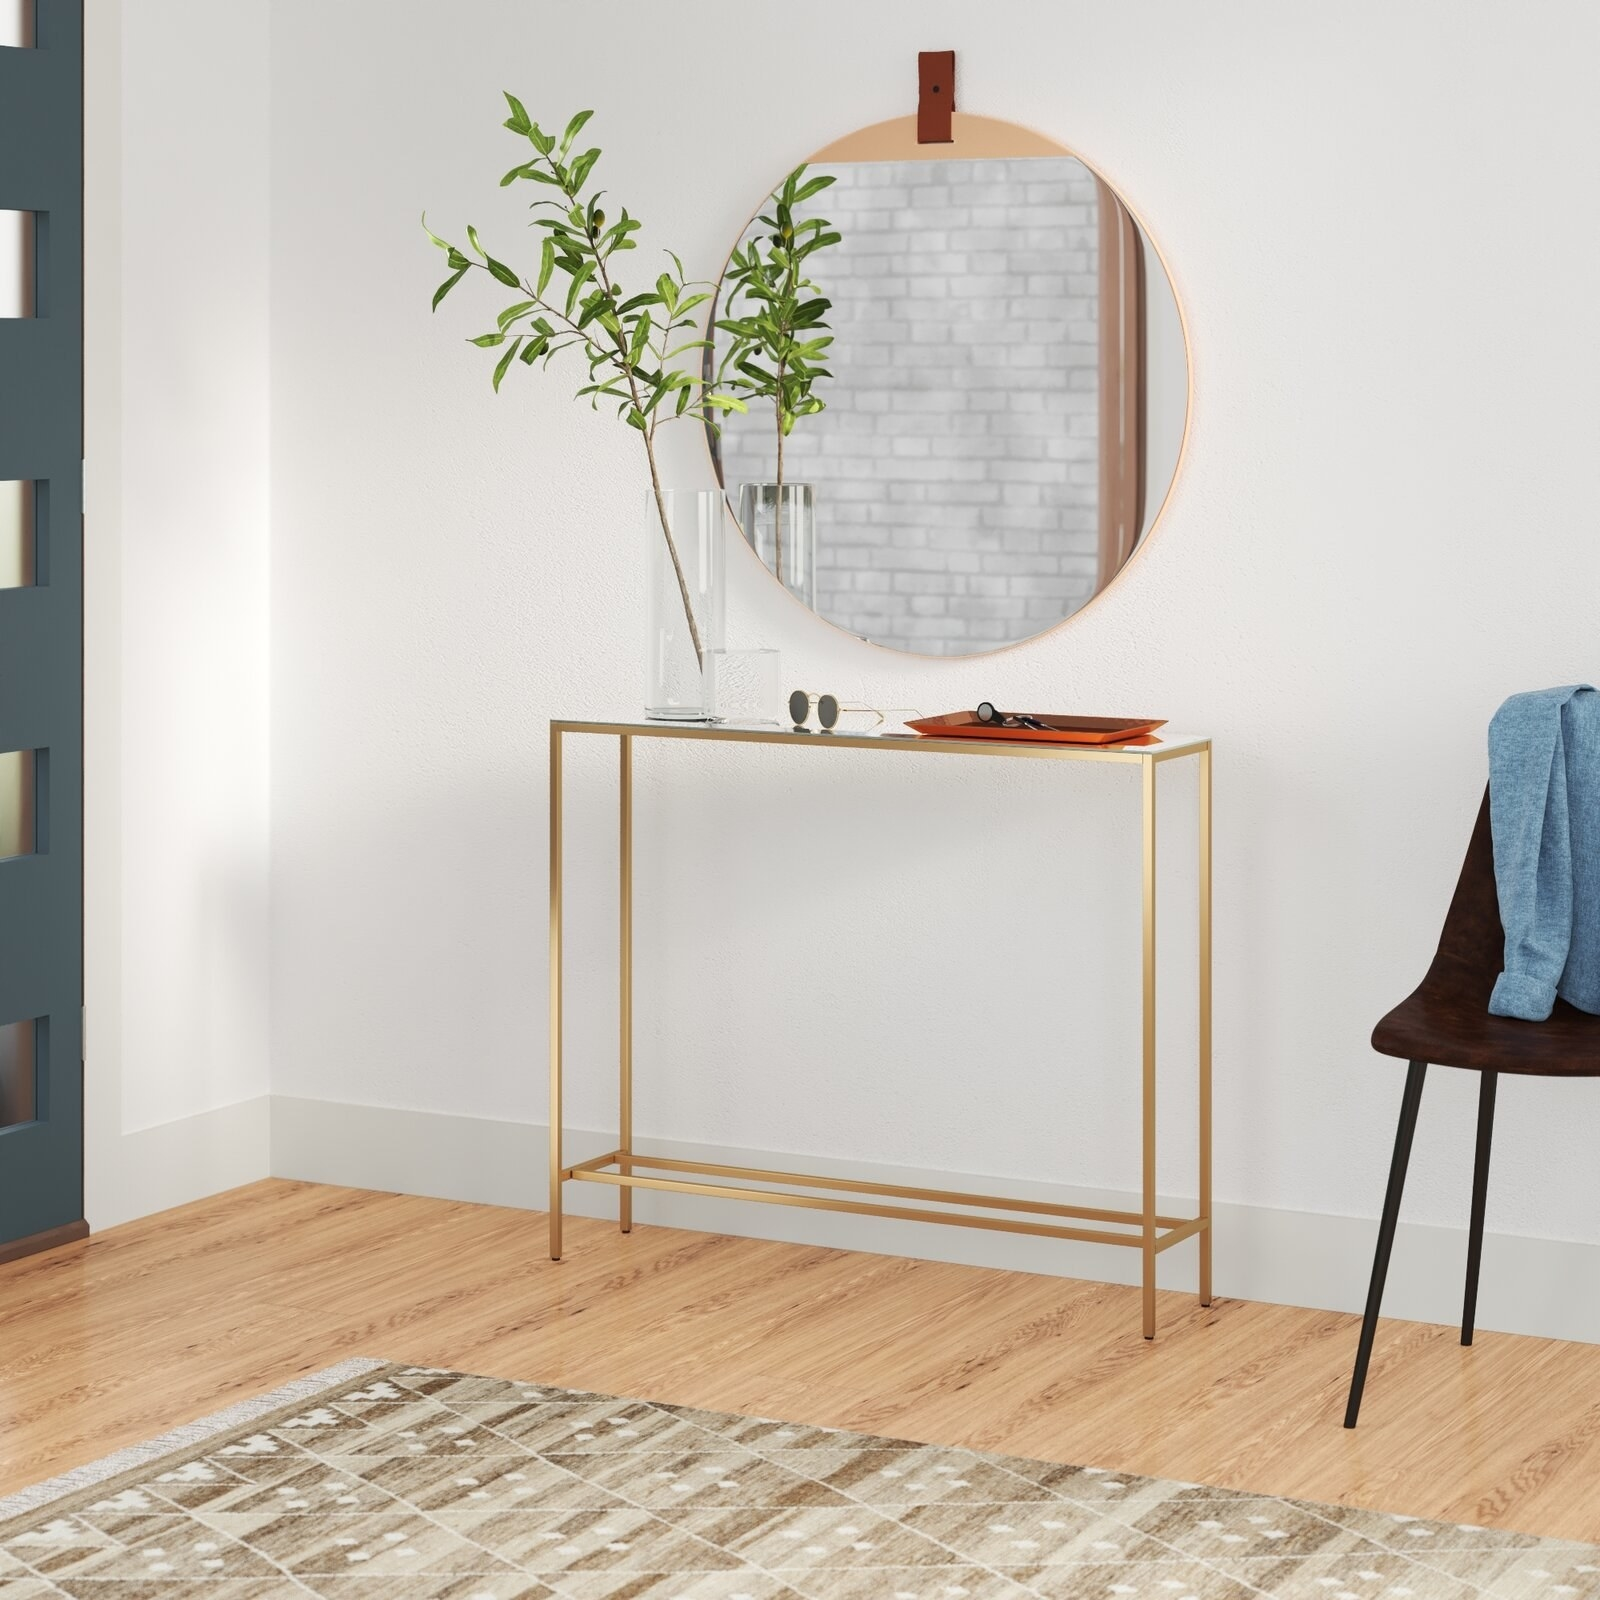 the narrow console table with a metal frame